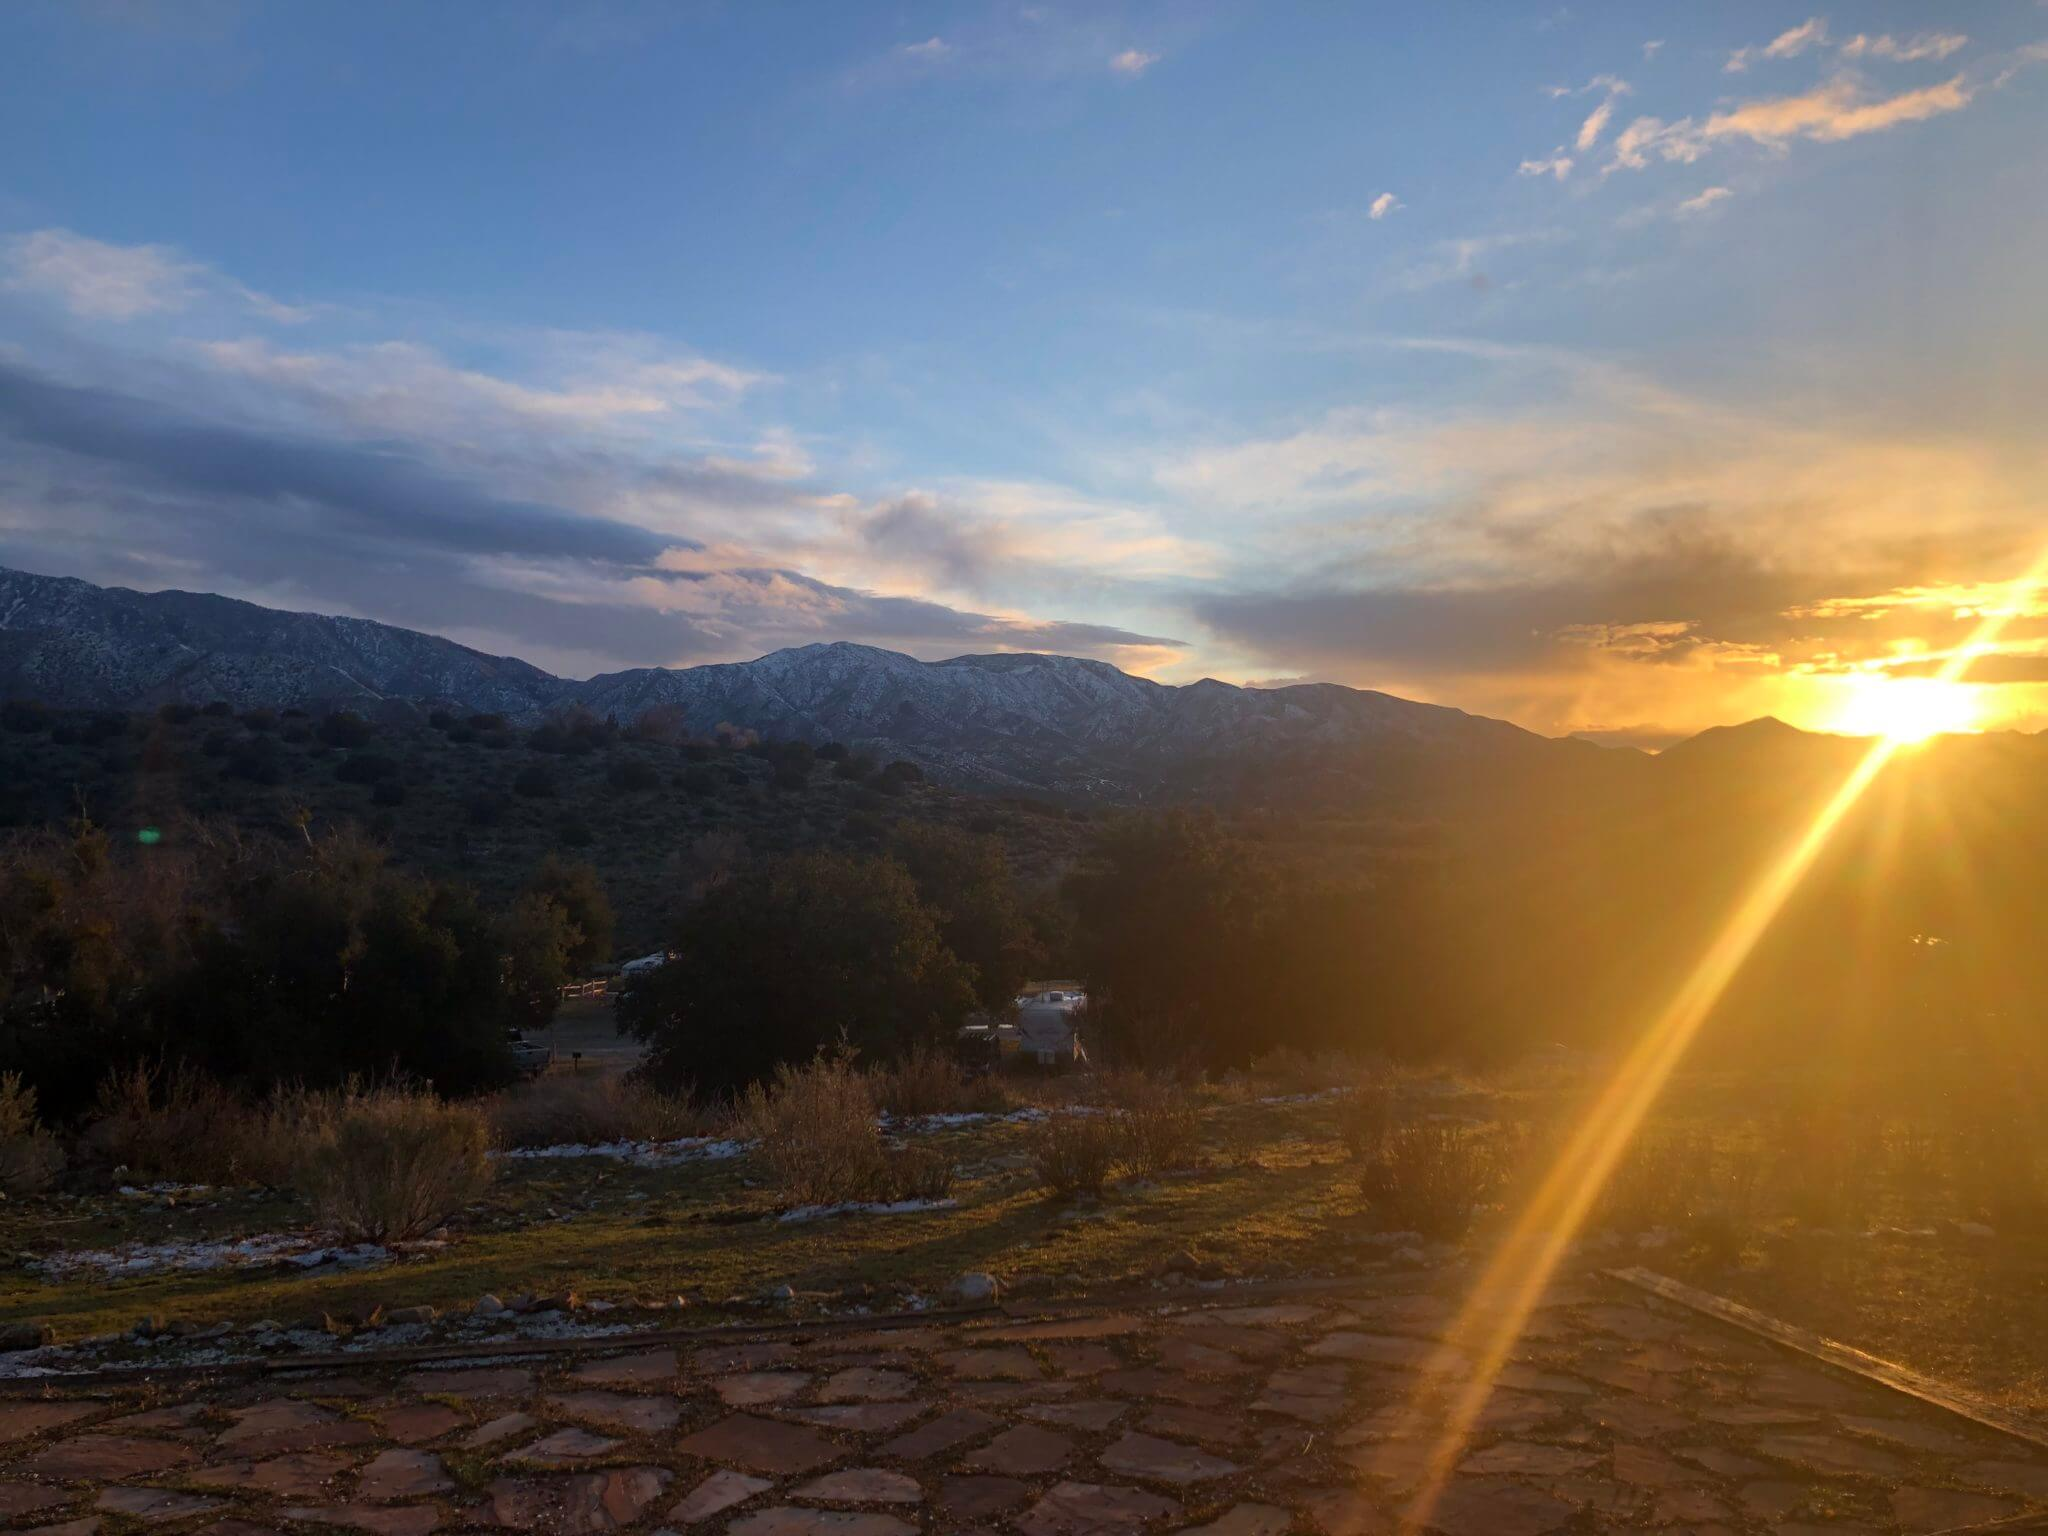 Sunset on a campsite in Thousand Trails Soledad Canyon in Acton, CA